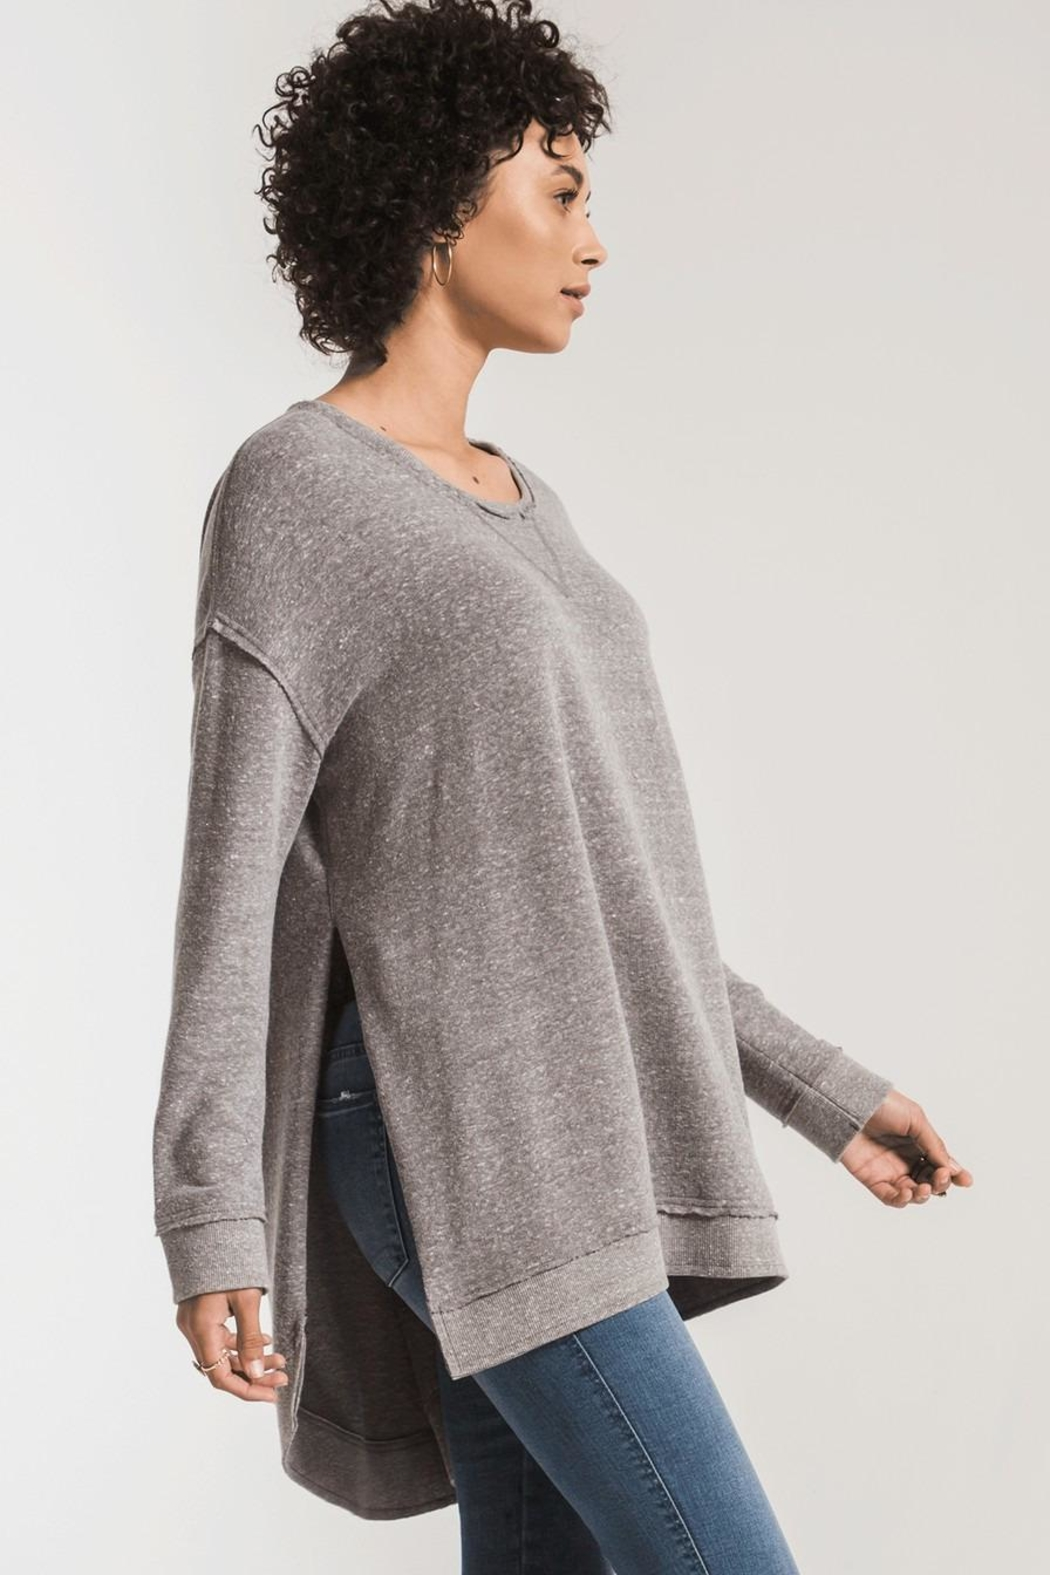 z supply Triblend Vacay Top - Front Full Image